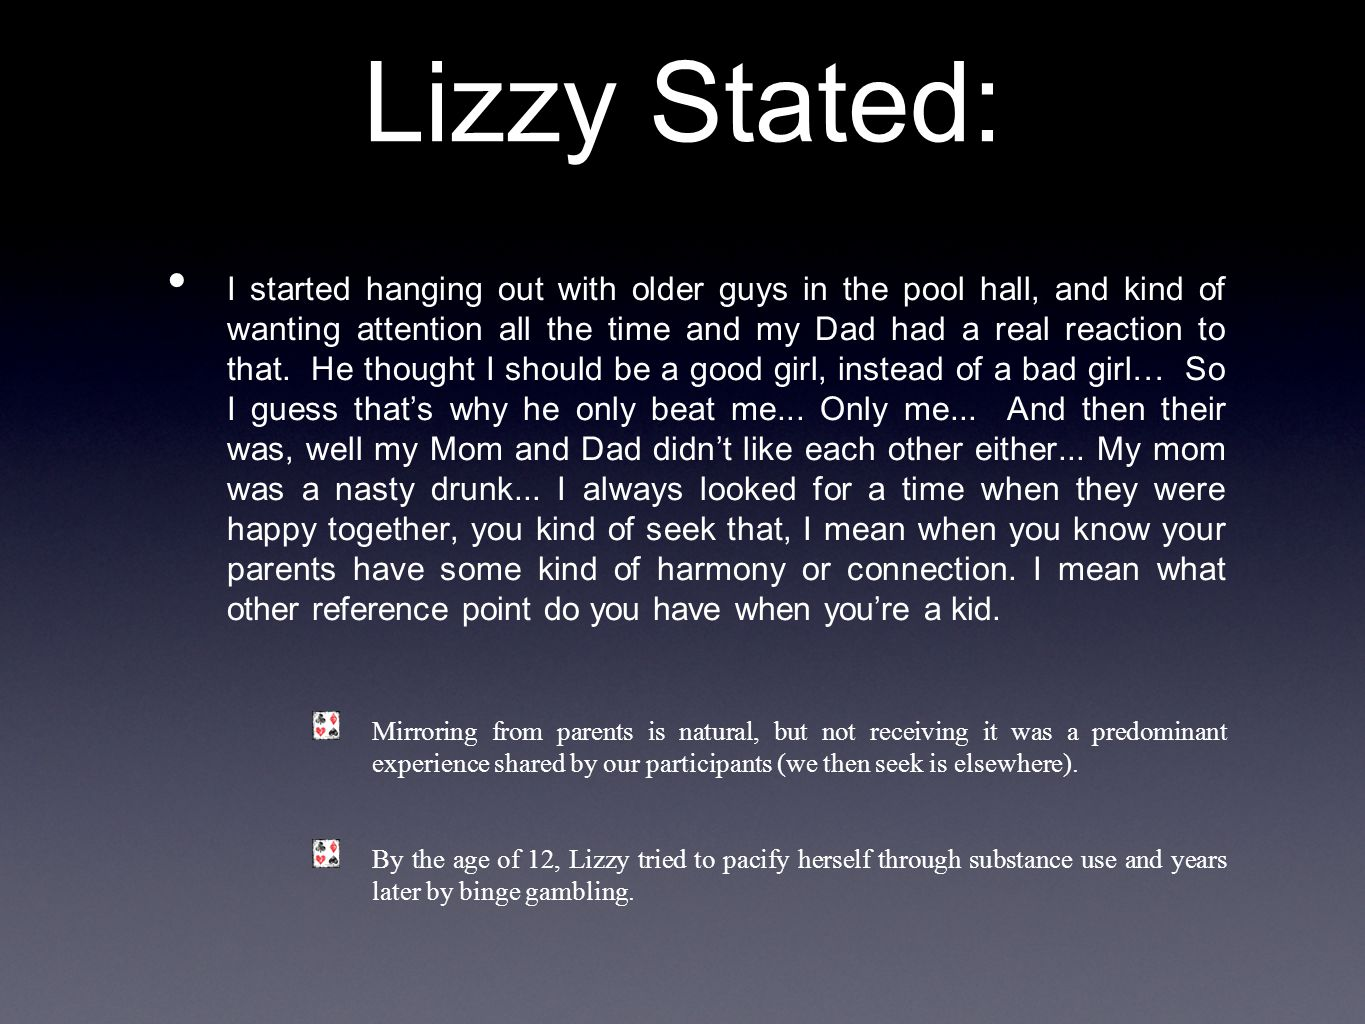 Lizzy Stated: I started hanging out with older guys in the pool hall, and kind of wanting attention all the time and my Dad had a real reaction to that.